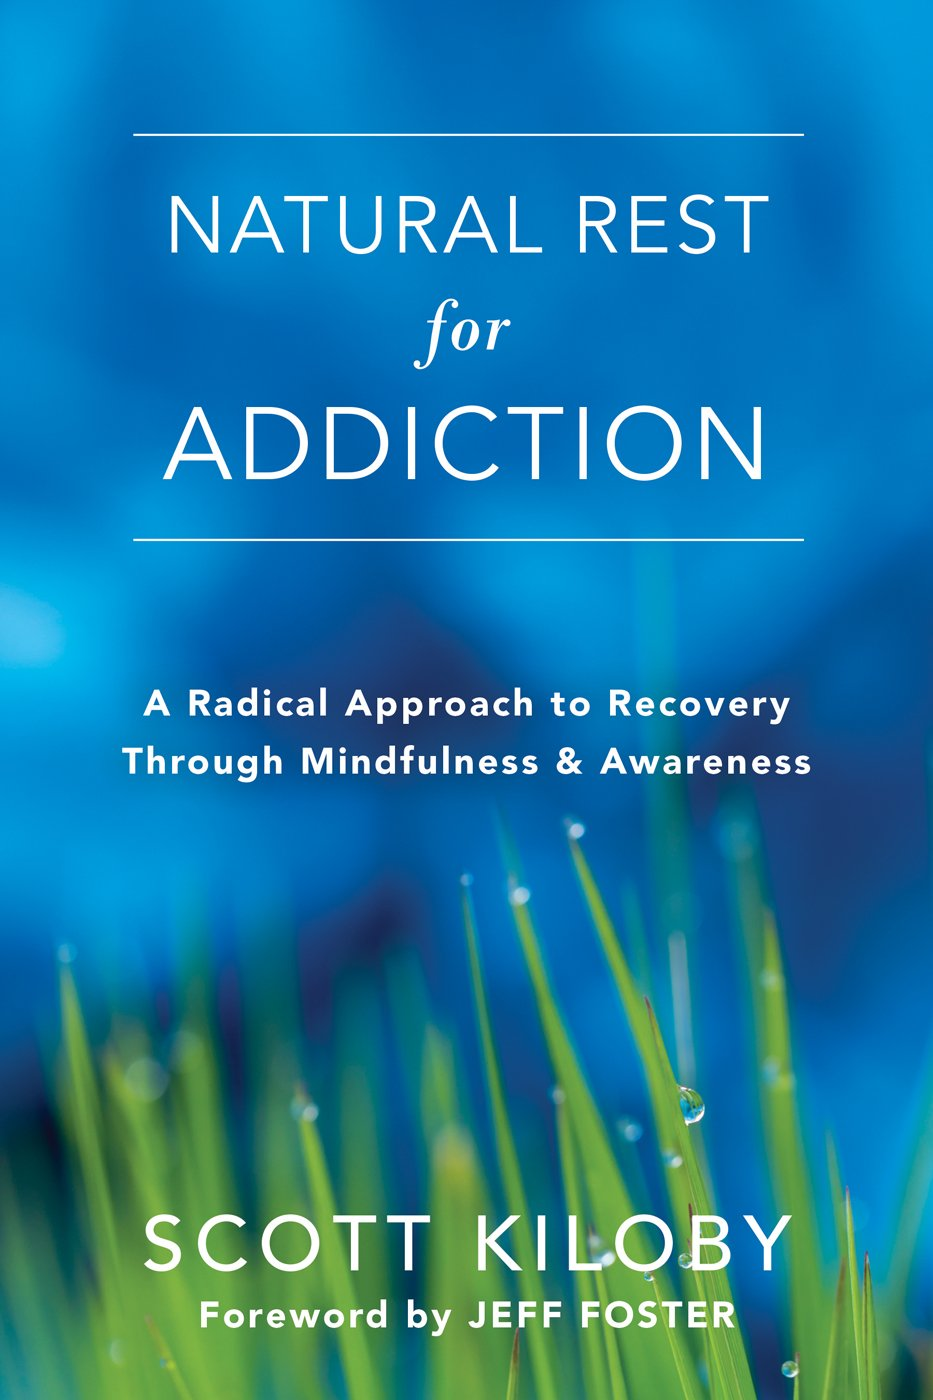 Natural Rest For Addiction  A Radical Approach To Recovery Through Mindfulness And Awareness